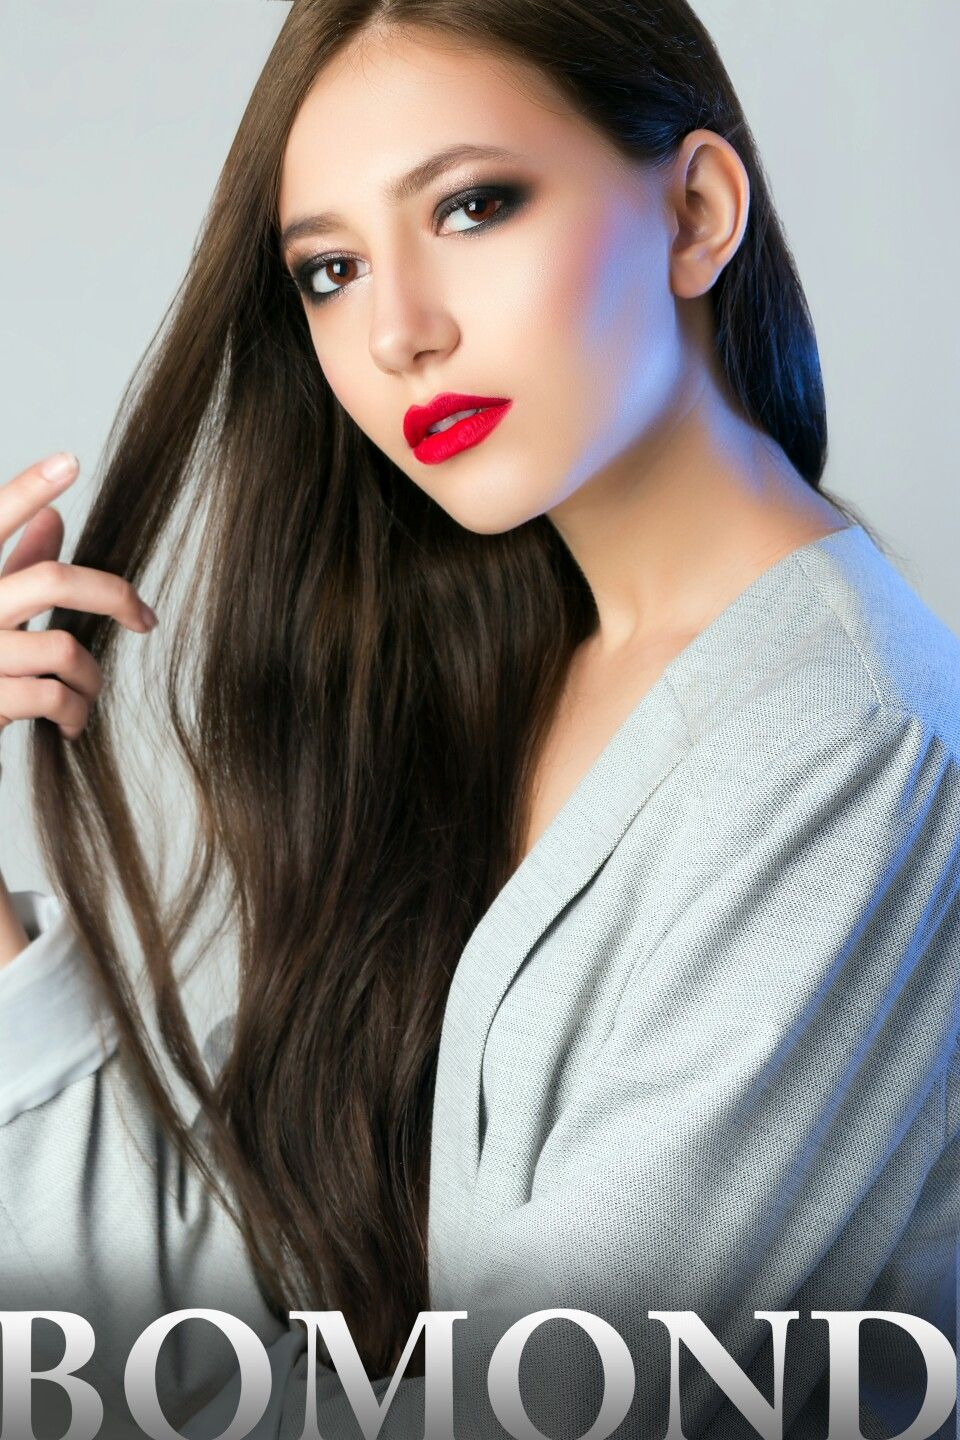 Smoky eyes and red lipstick